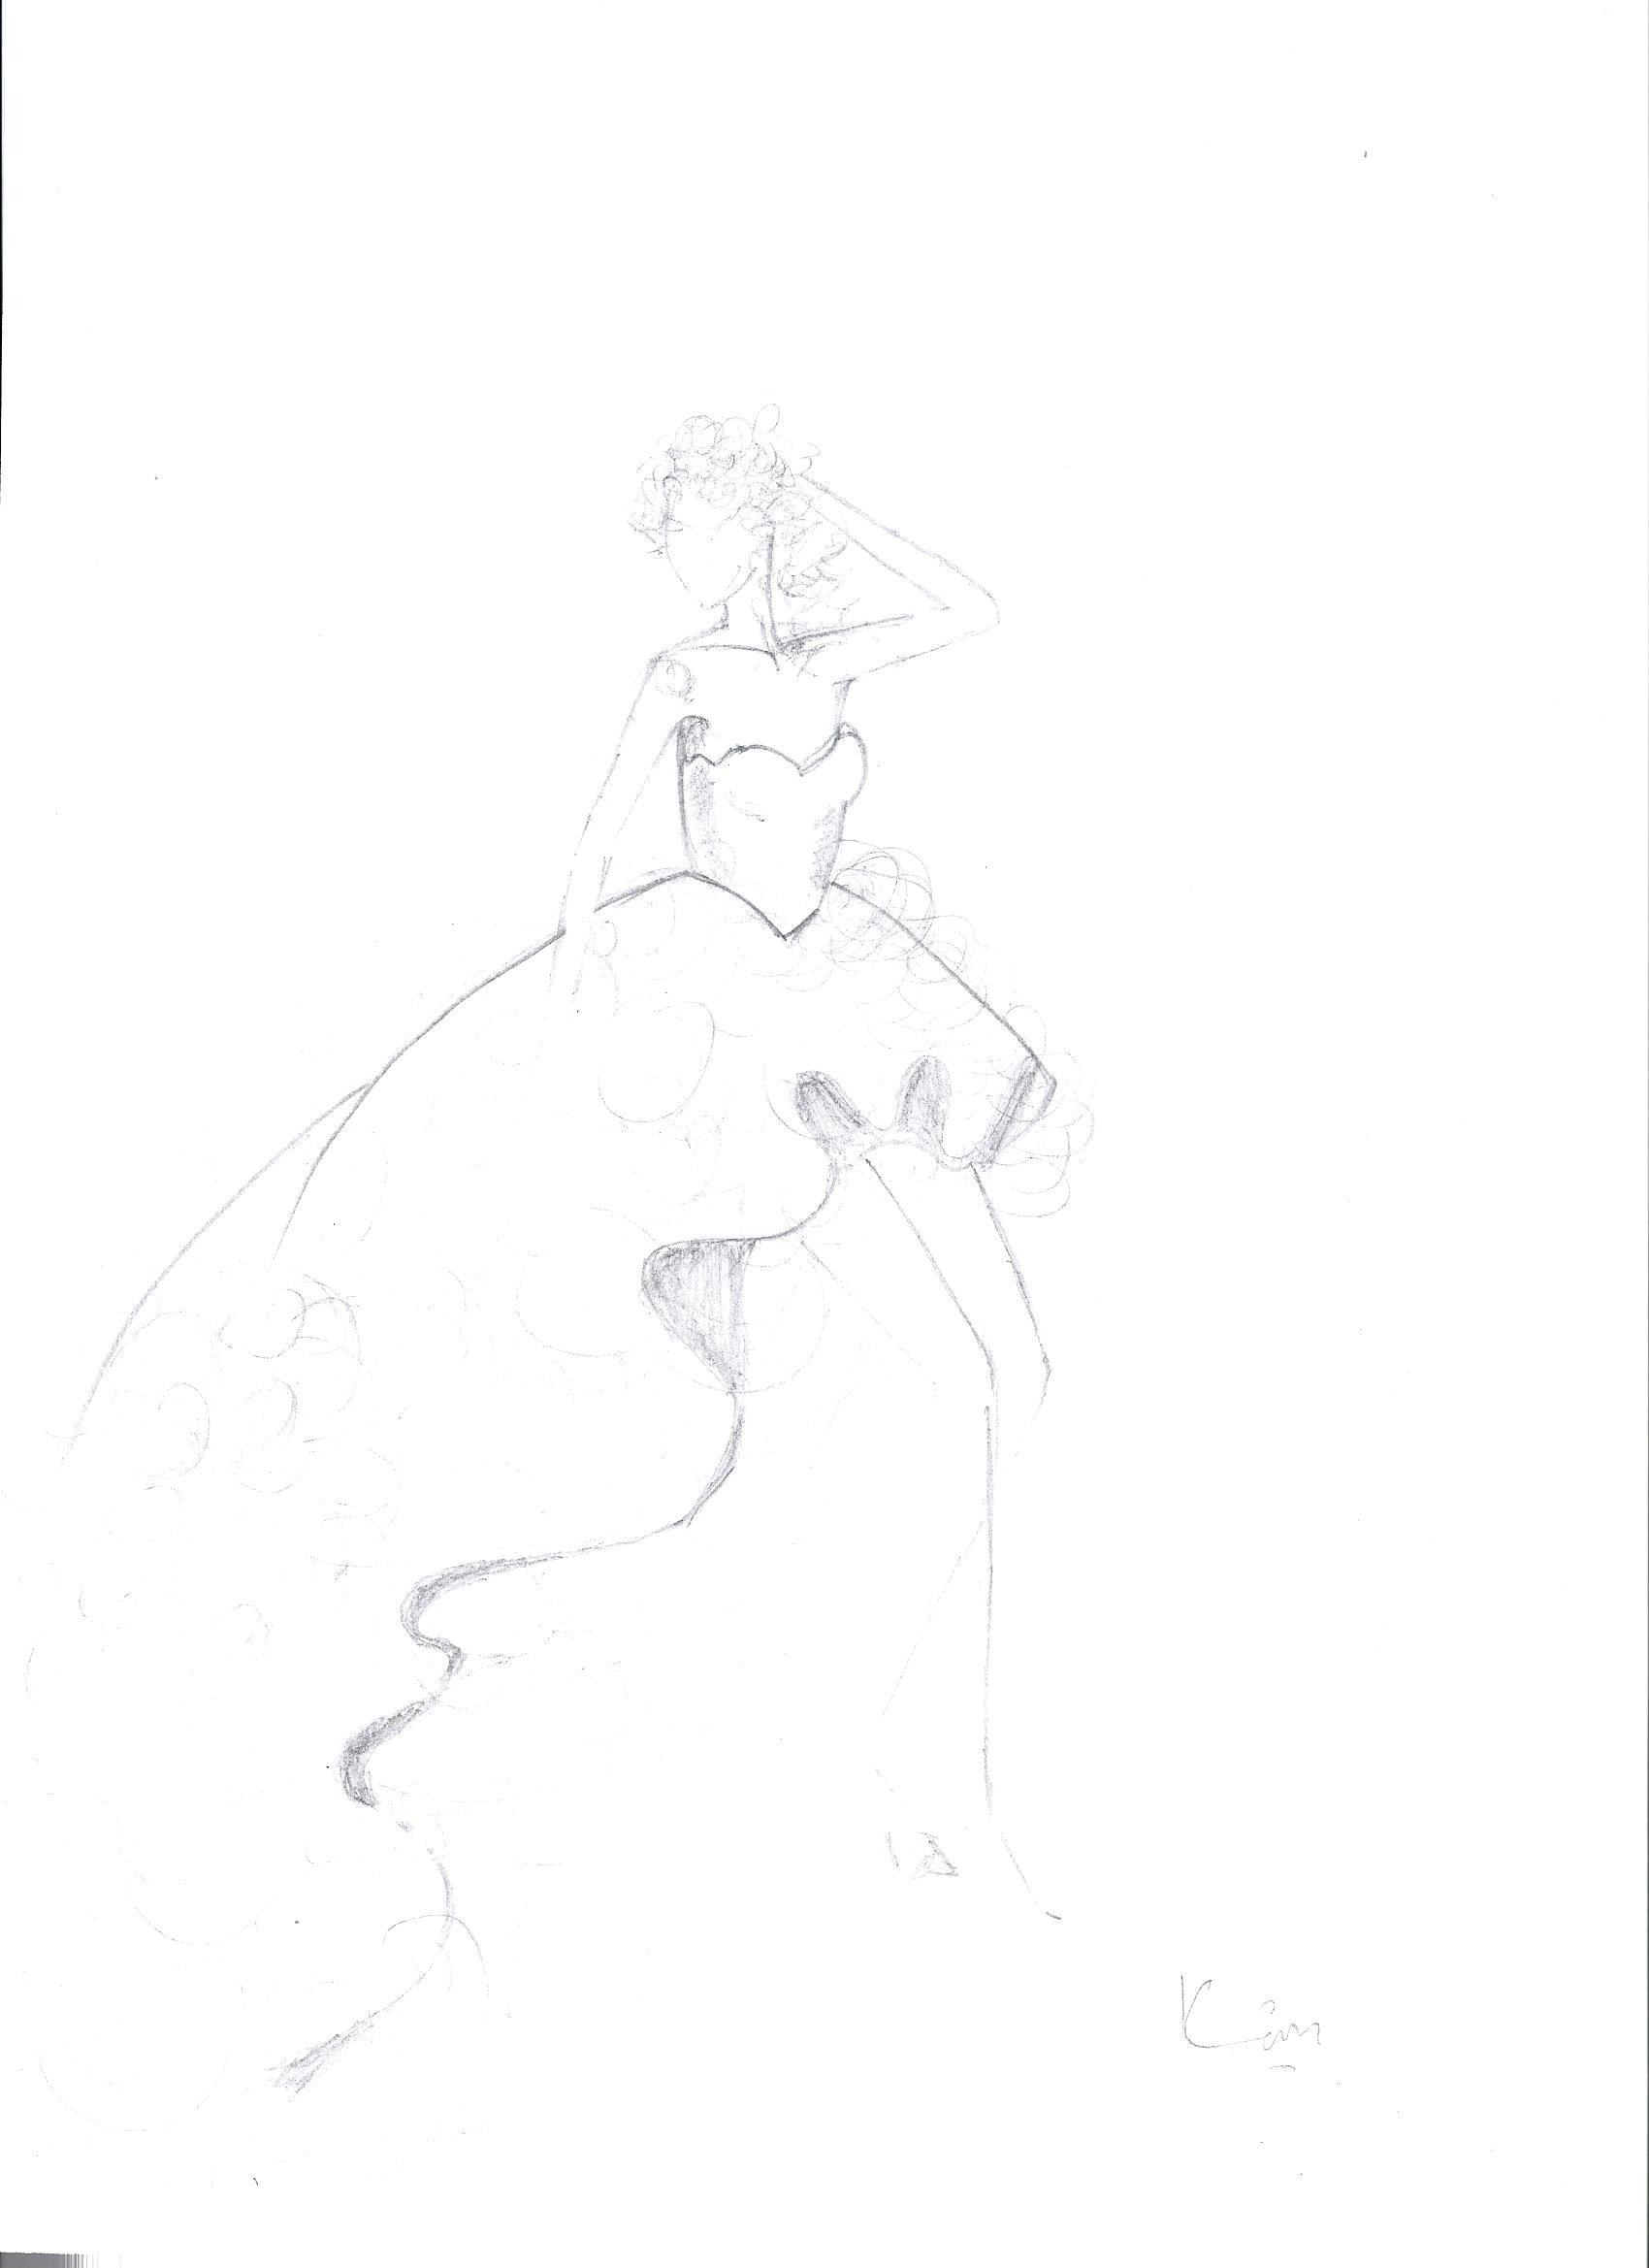 SKETCH-My Muse - image 3 - student project